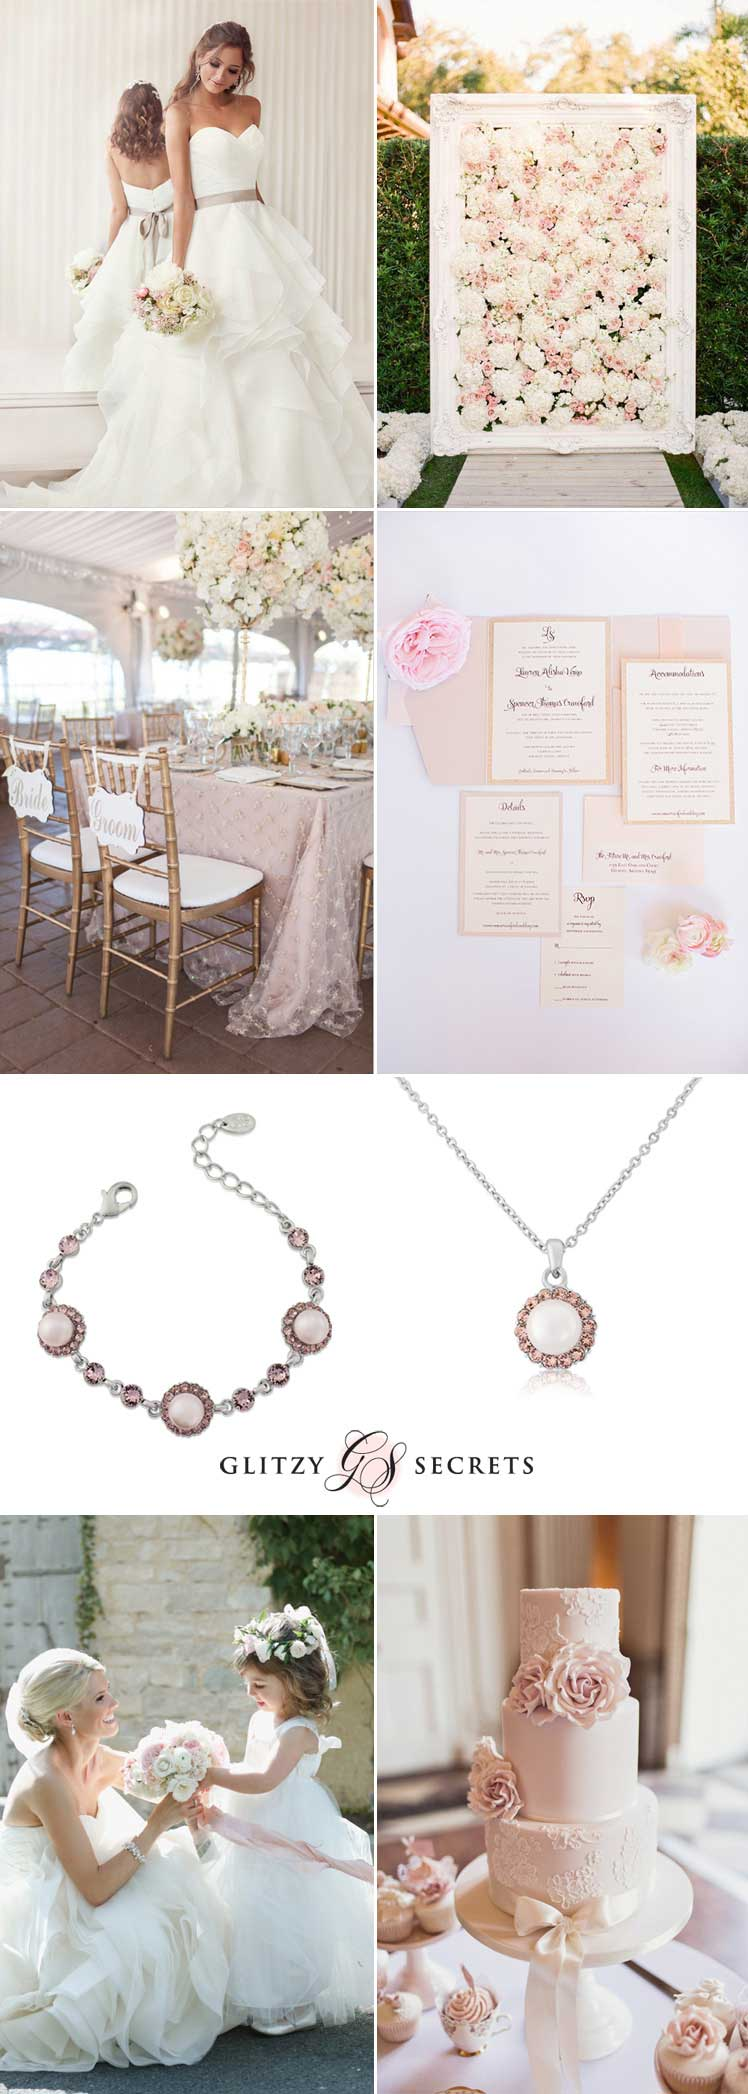 beatuiful blush and ivory wedding inspiration